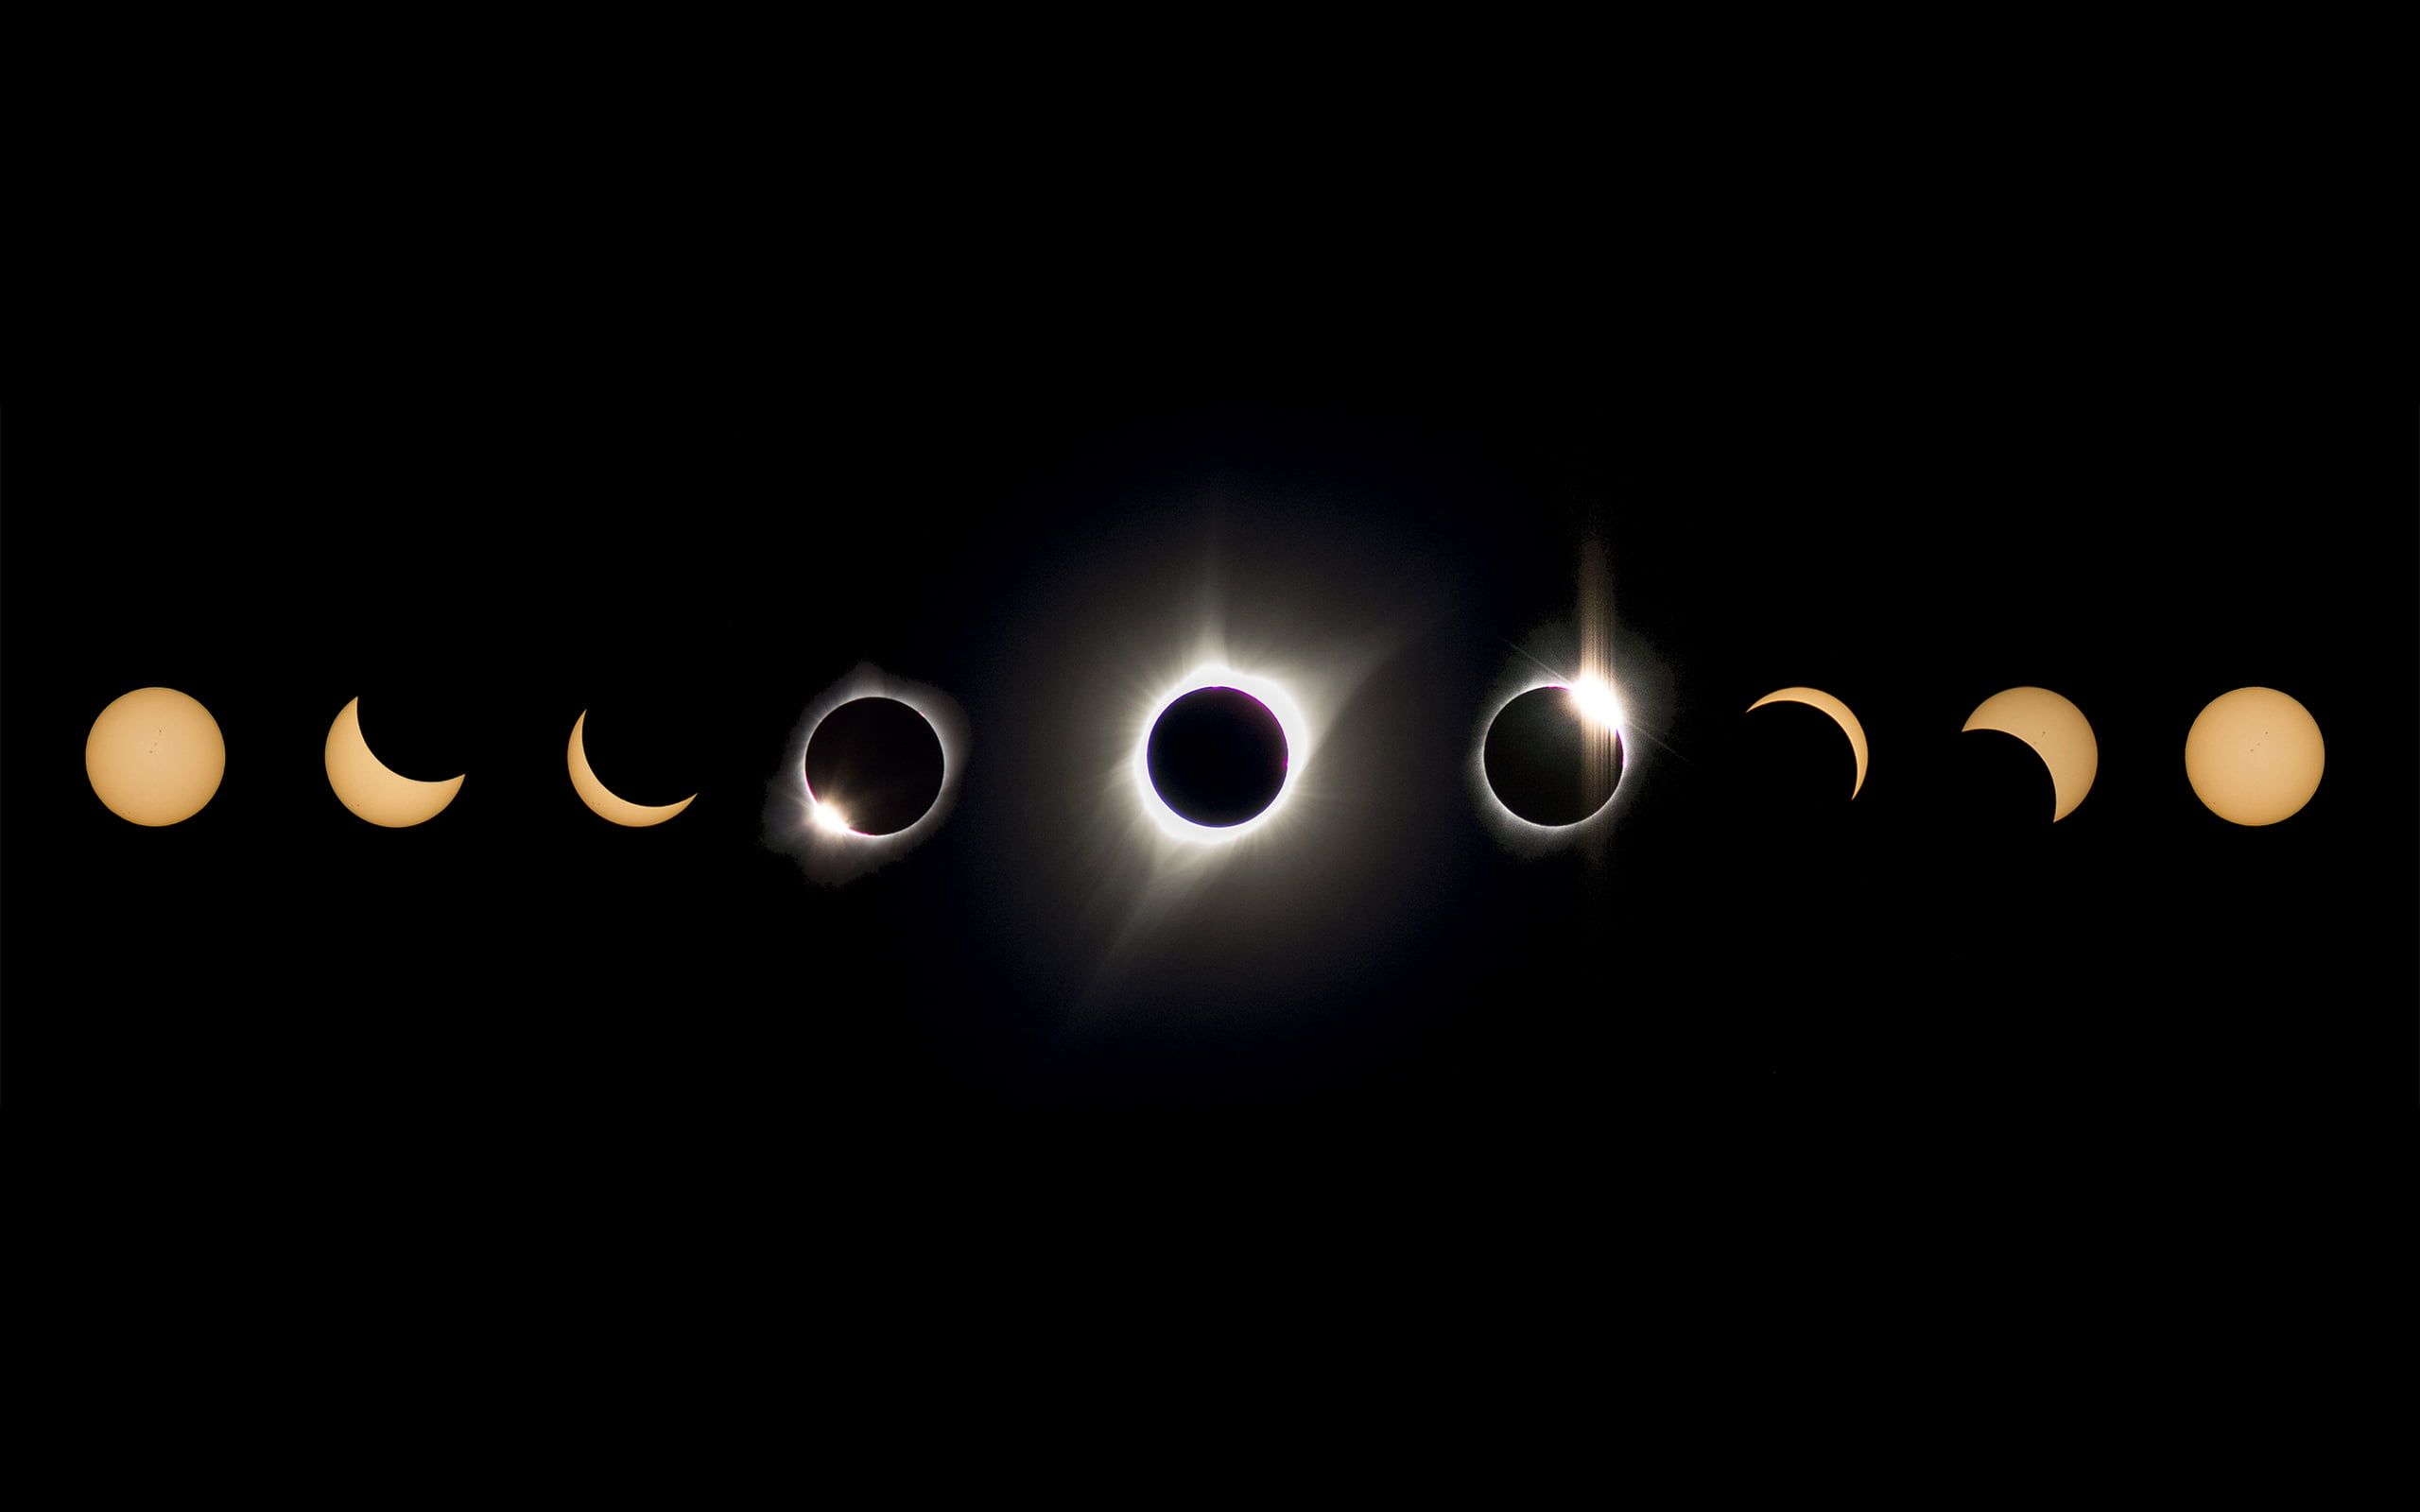 Moon Phases Wallpapers - Top Free Moon Phases Backgrounds